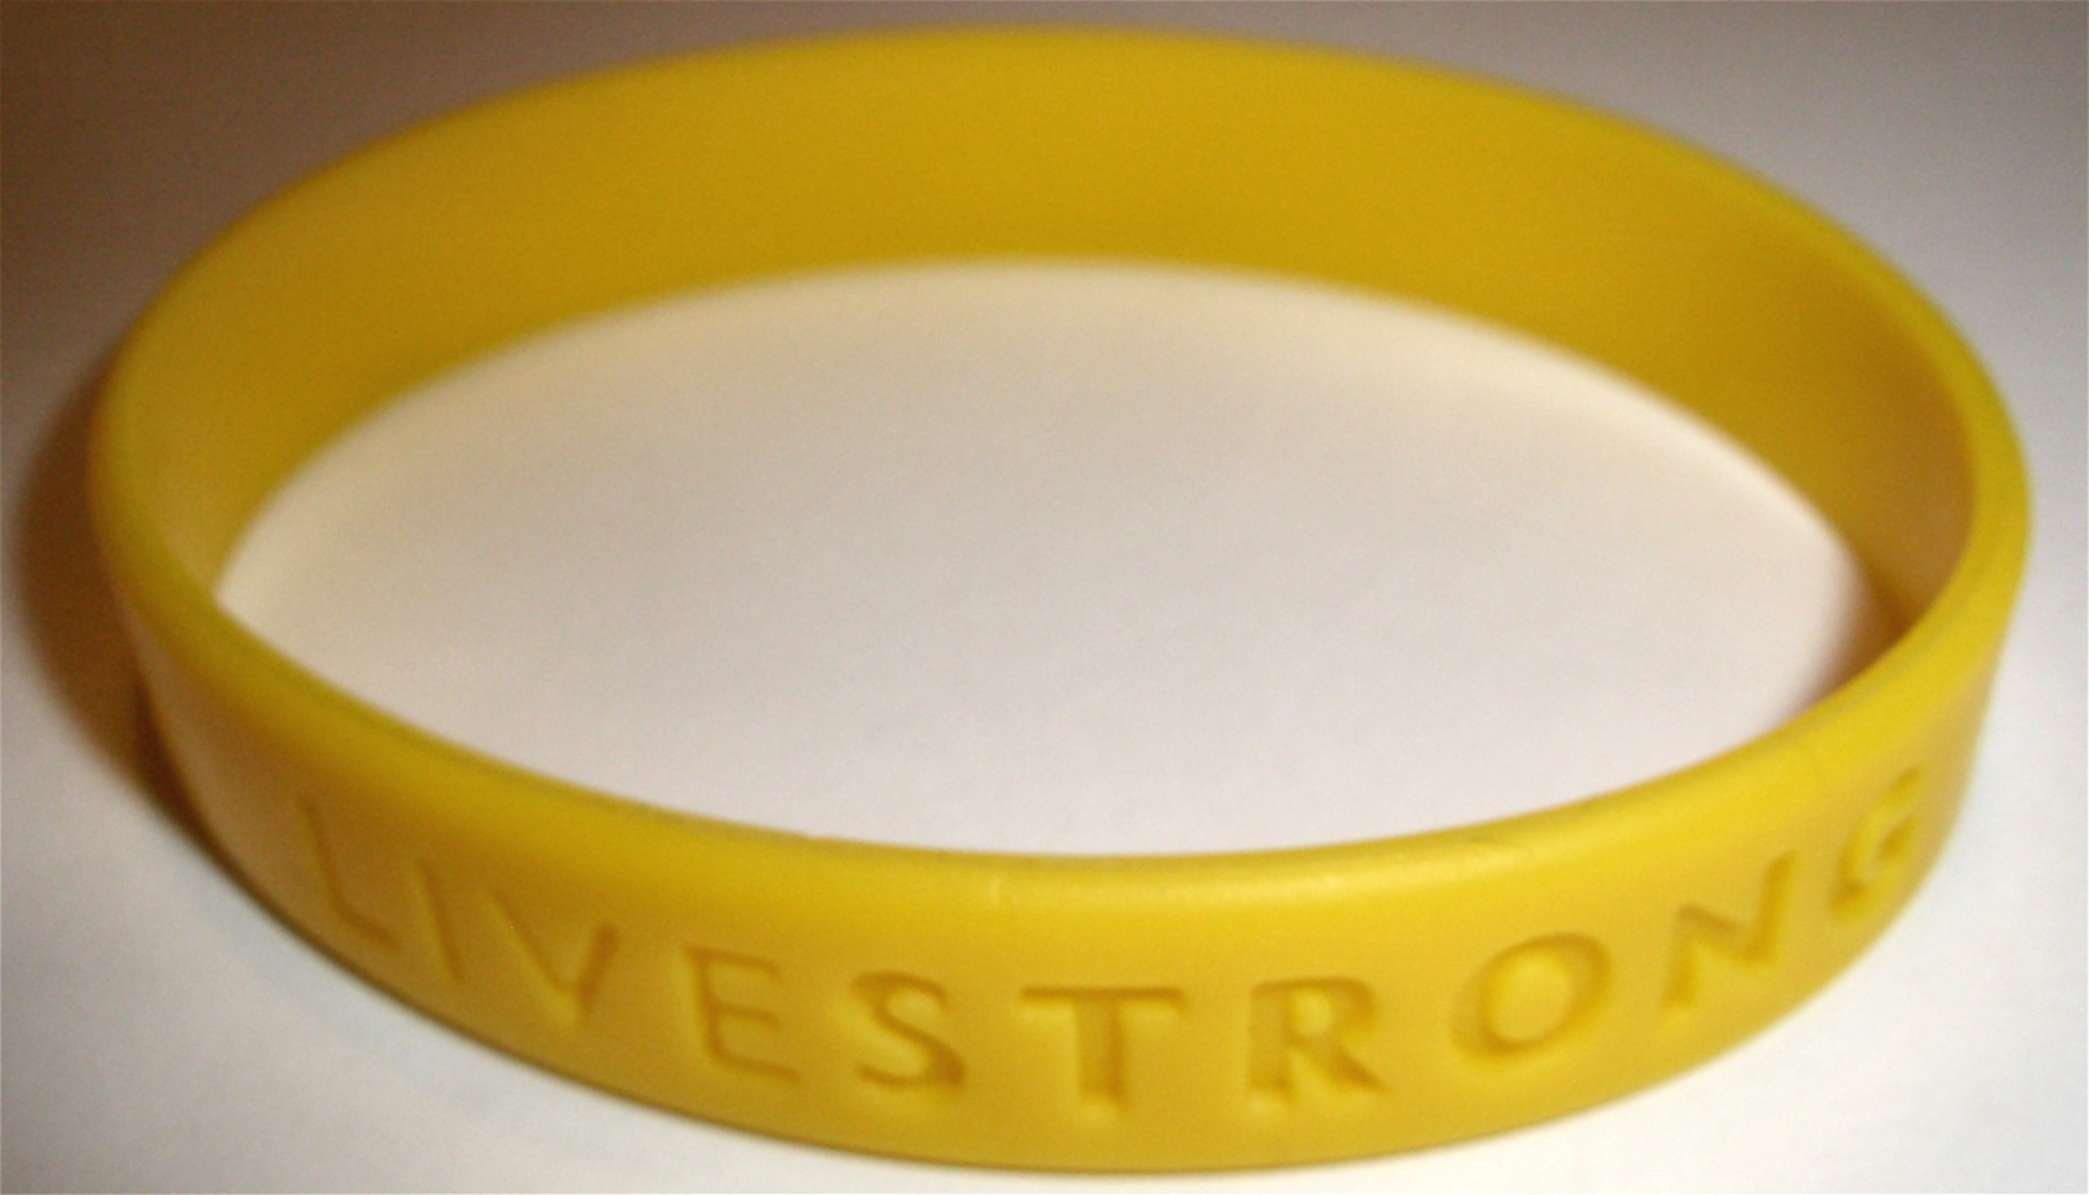 4c370049f169 Livestrong - Wikipedia